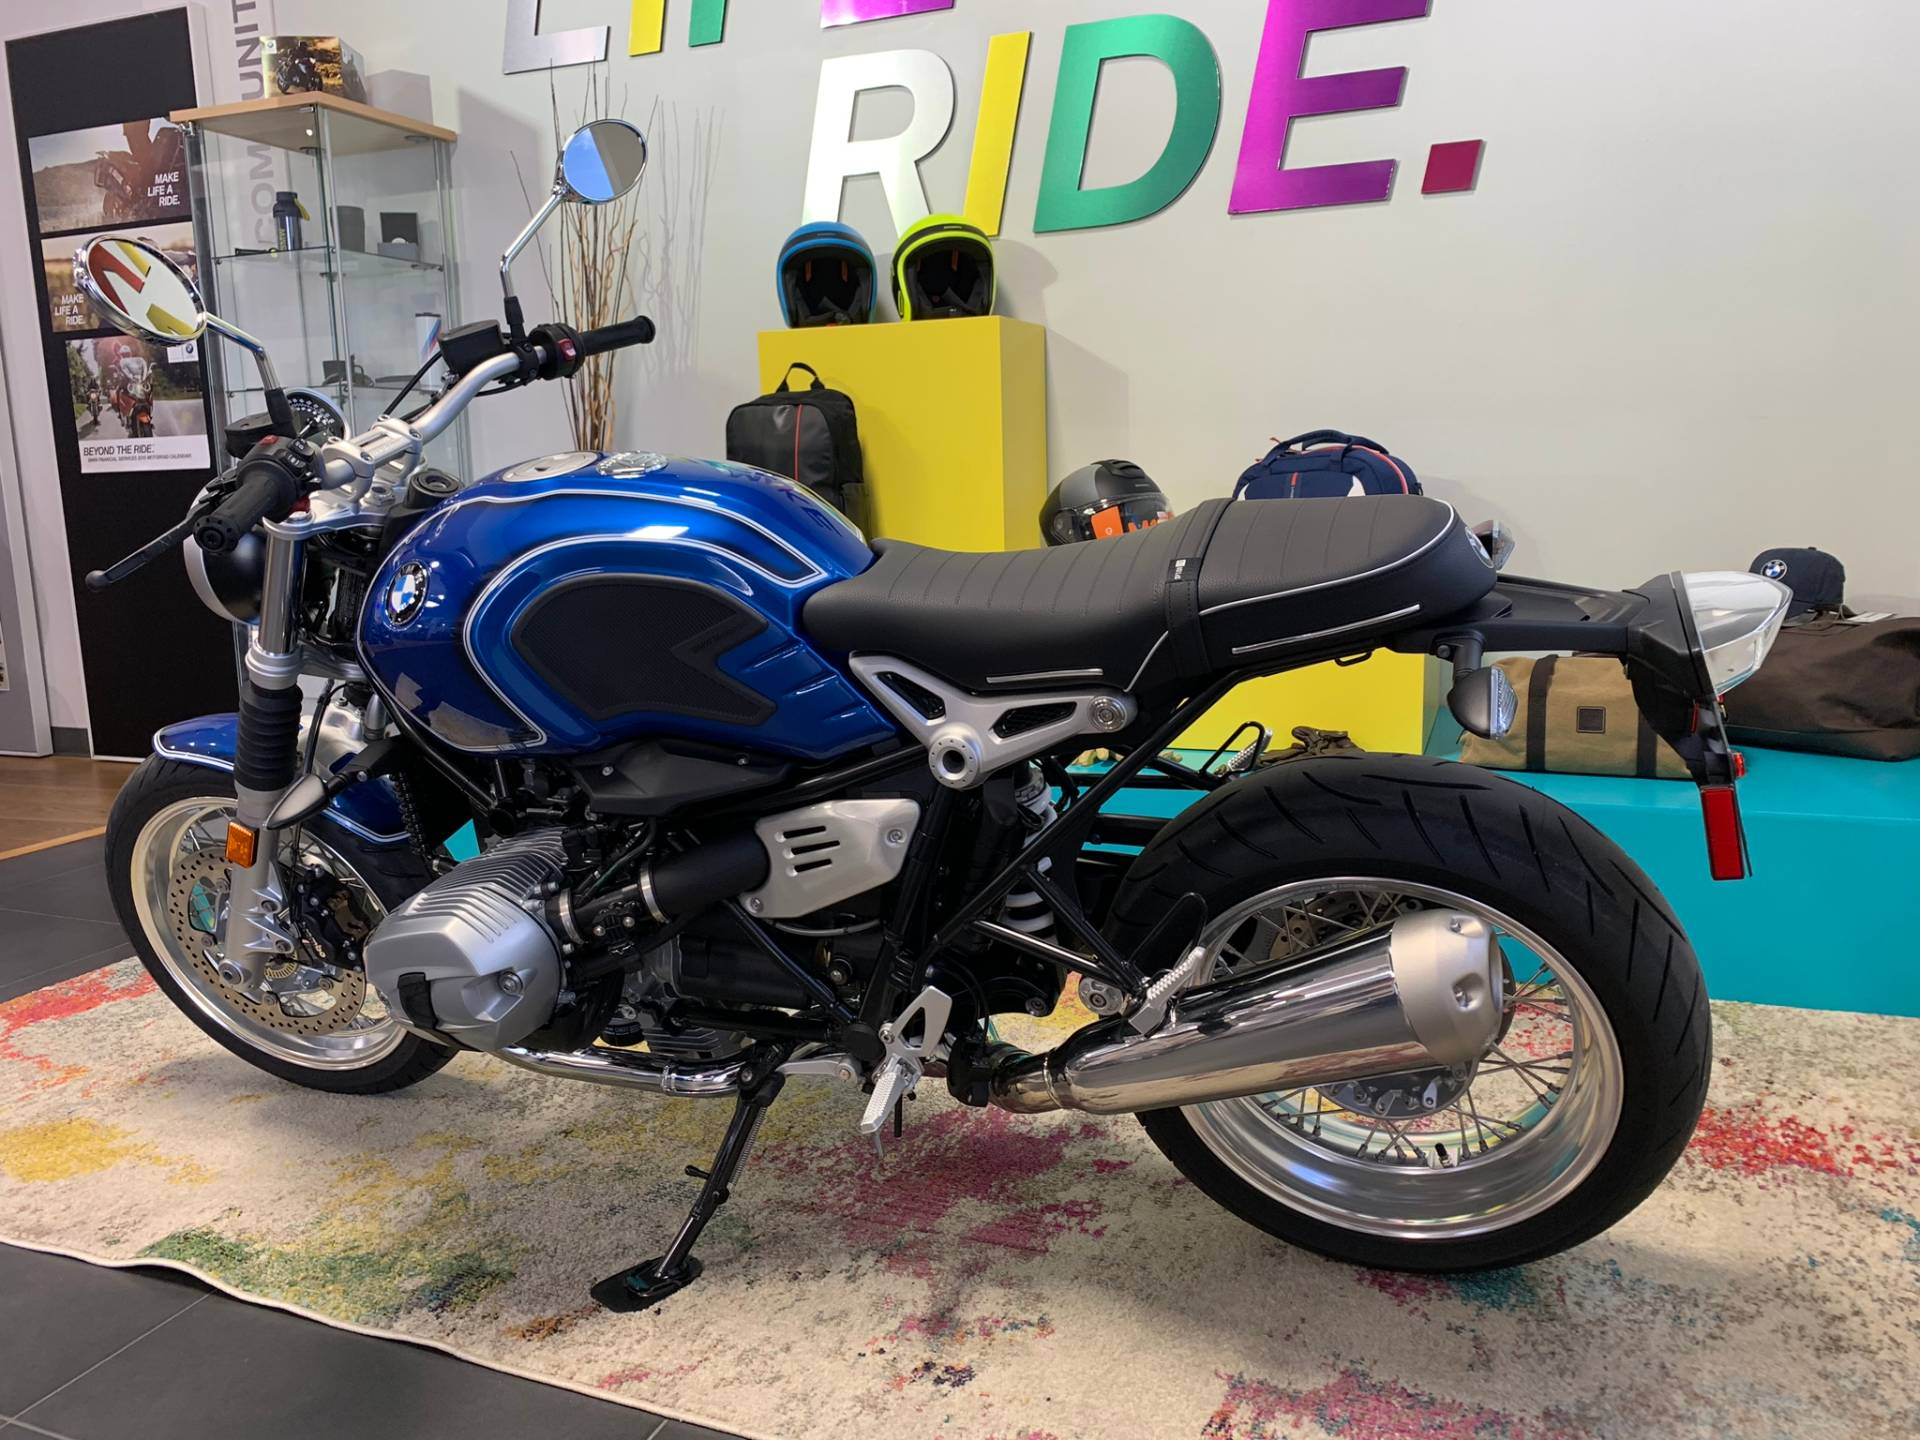 New 2020 2019 BMW R NineT for sale, BMW for sale, BMW Motorcycle Café Racer, new BMW Caffe, Cafe Racer, BMW. BMW Motorcycles of Miami, Motorcycles of Miami, Motorcycles Miami, New Motorcycles, Used Motorcycles, pre-owned. #BMWMotorcyclesOfMiami #MotorcyclesOfMiami. - Photo 29